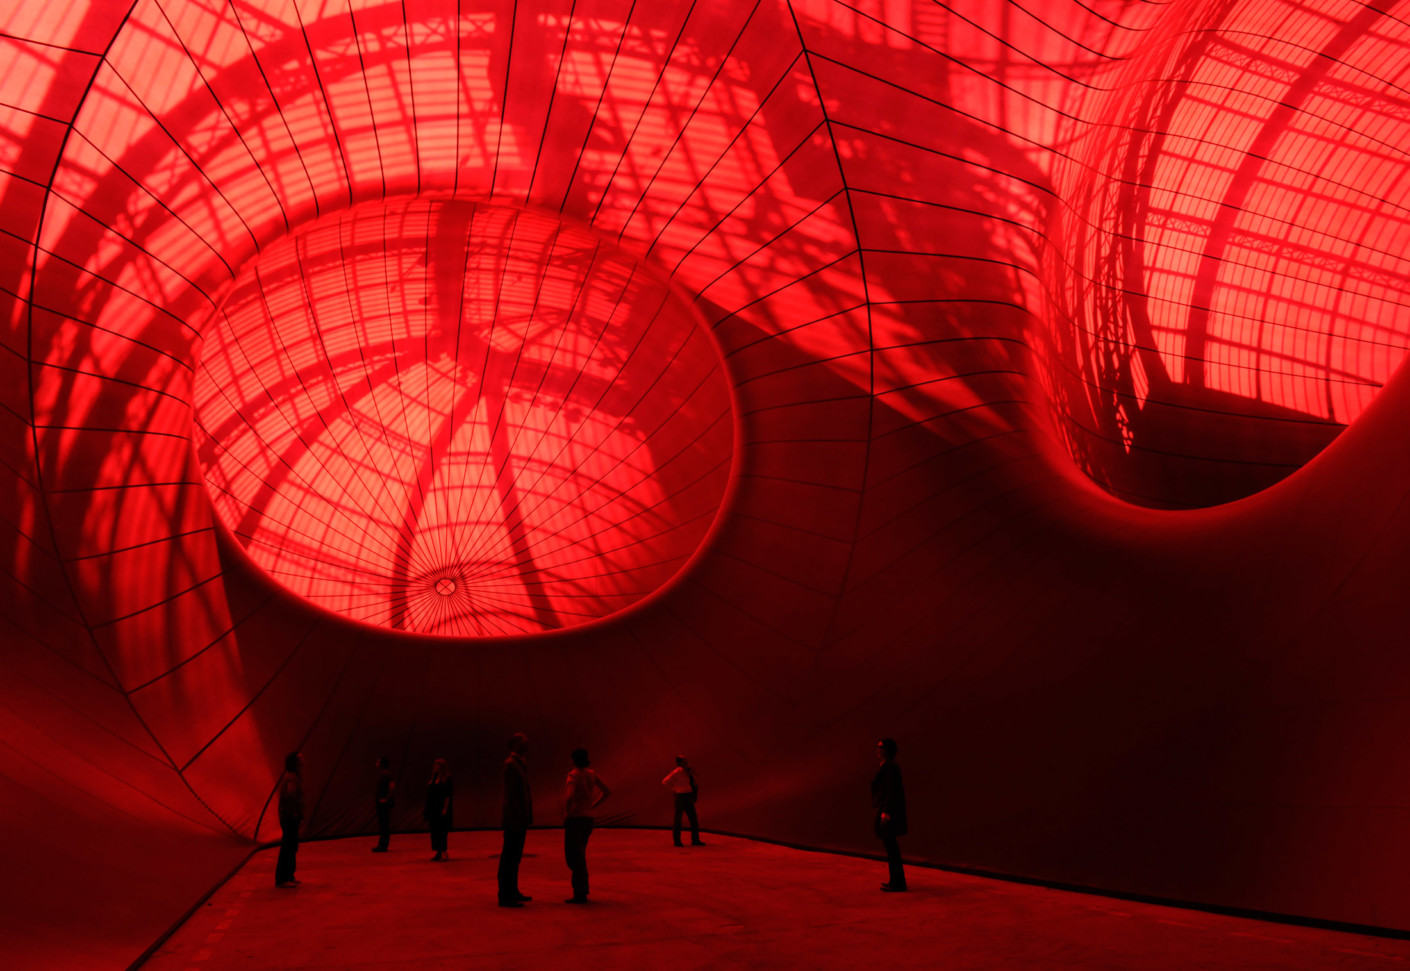 Image result for SERGE FERRARI fabrics anish kapoor grand palais